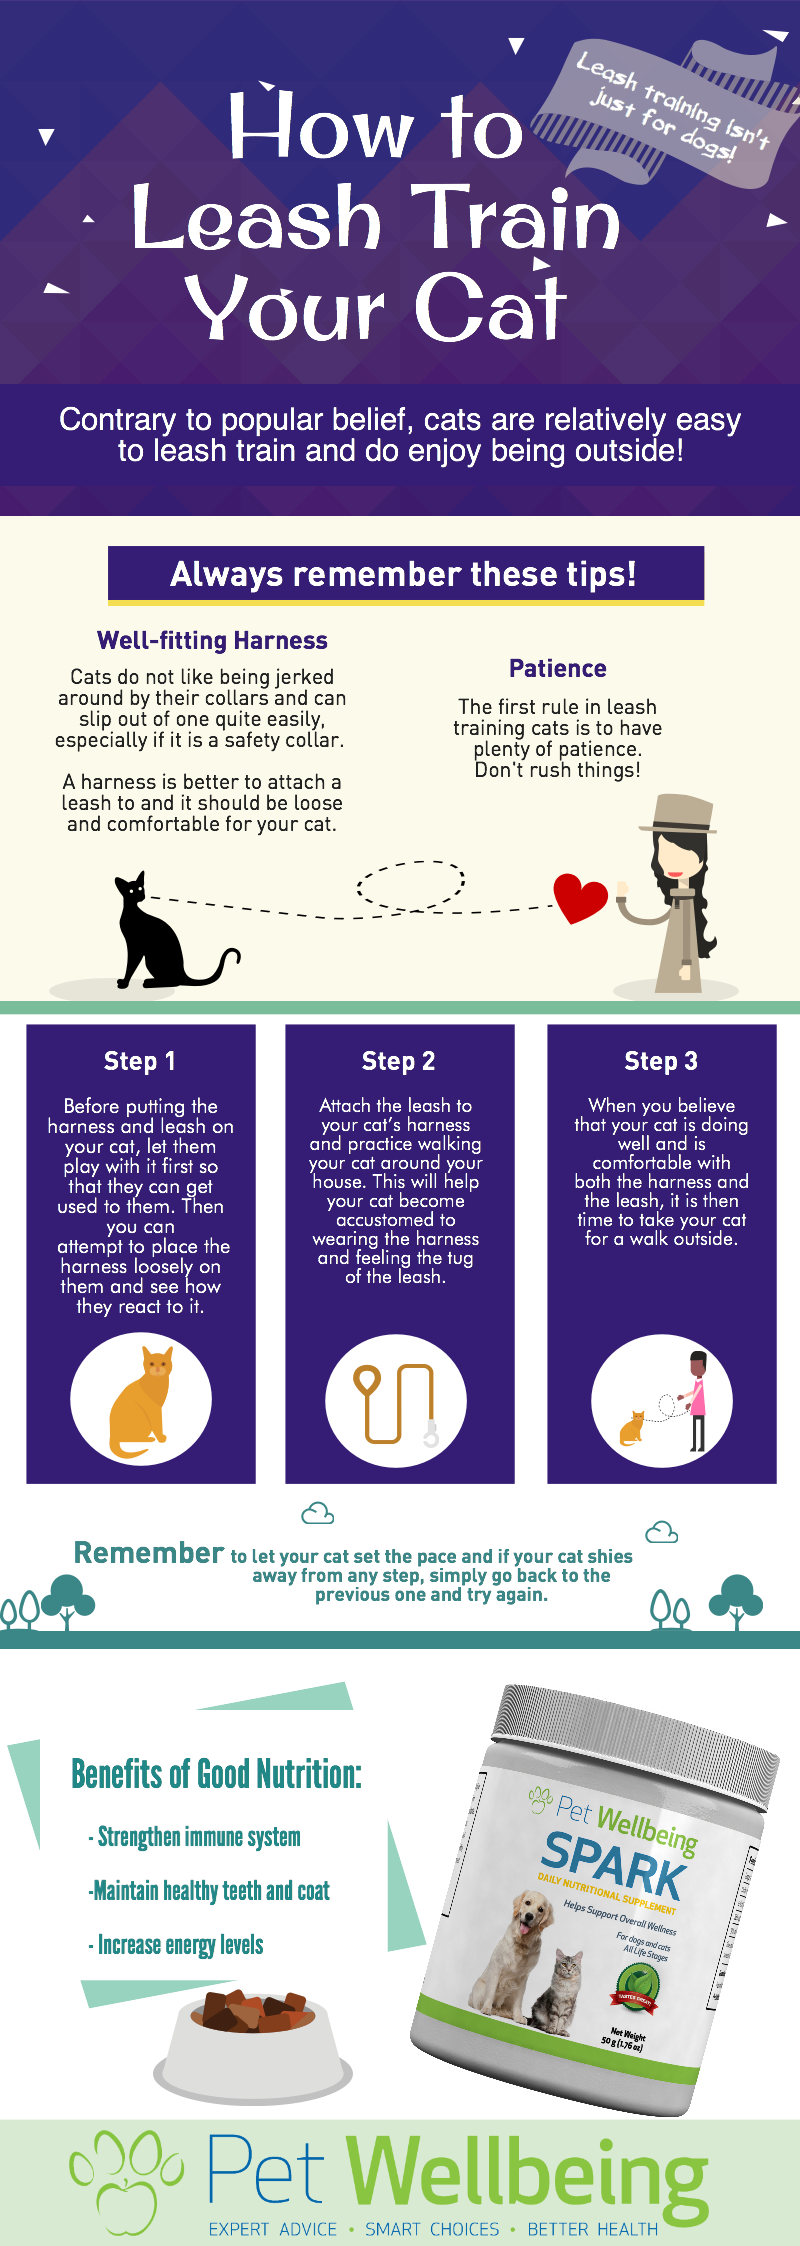 How To Leash Train Your Cat Infographic By Pet Wellbeing Cat Leashtraining Petwellbeing Cattrain Cathealth Leash Training Cat Infographic Cat Health